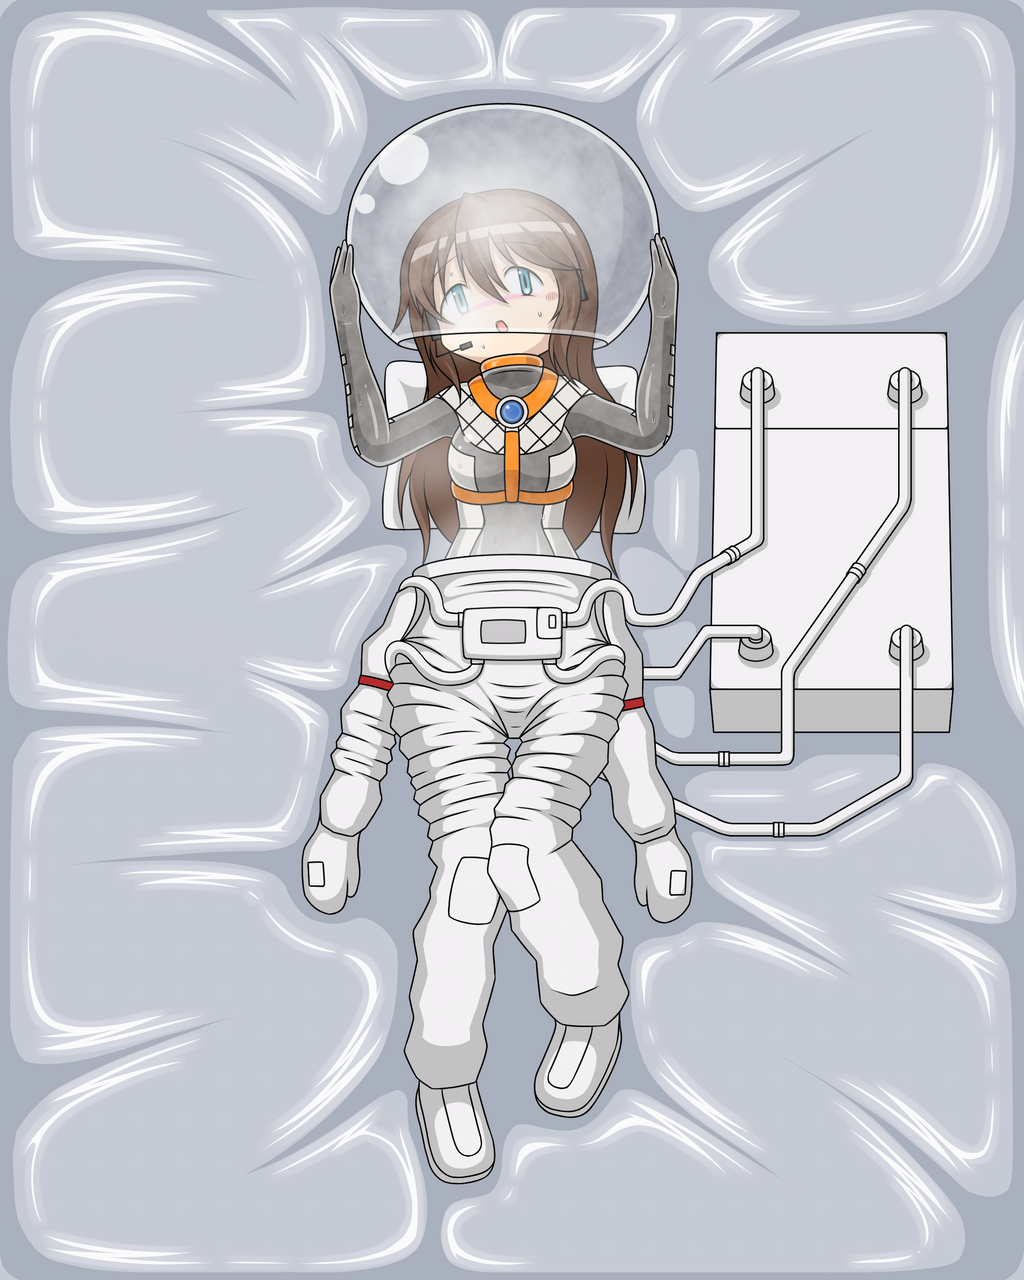 A Girl Taking off Space Suit by Nekomi4 on DeviantArt